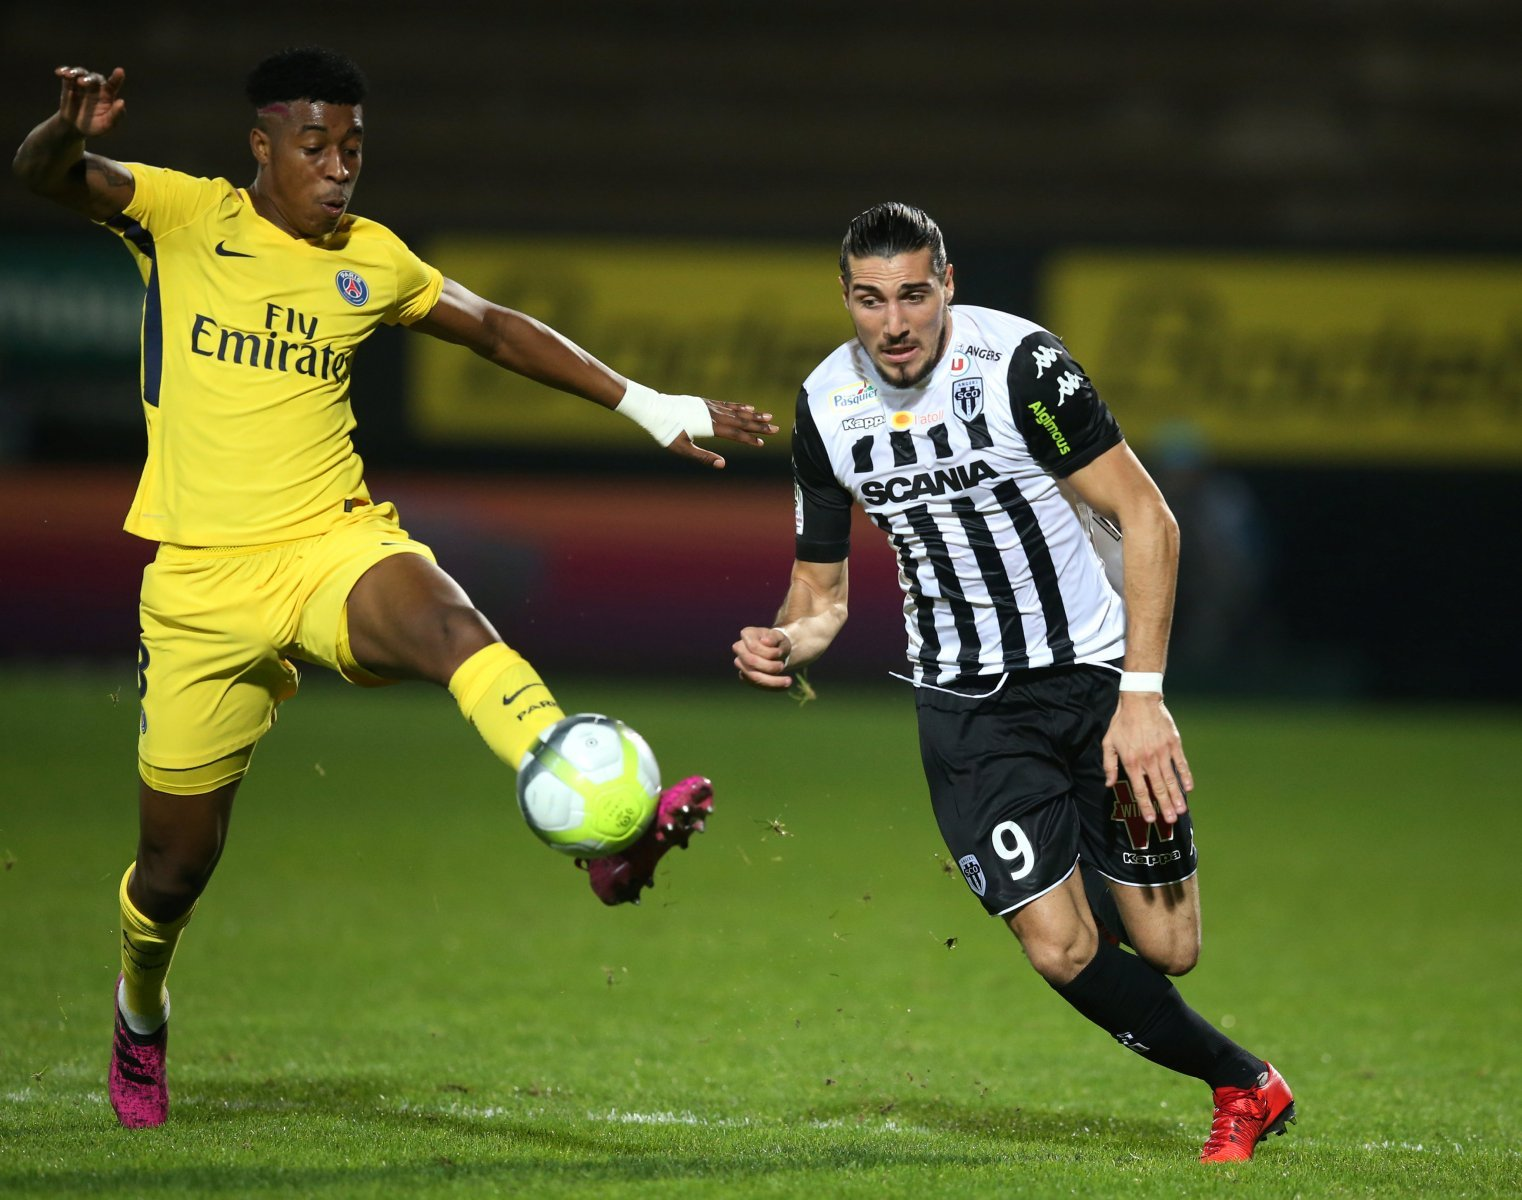 Middlesbrough: Smoggies make contact with French forward Enzo Crivelli